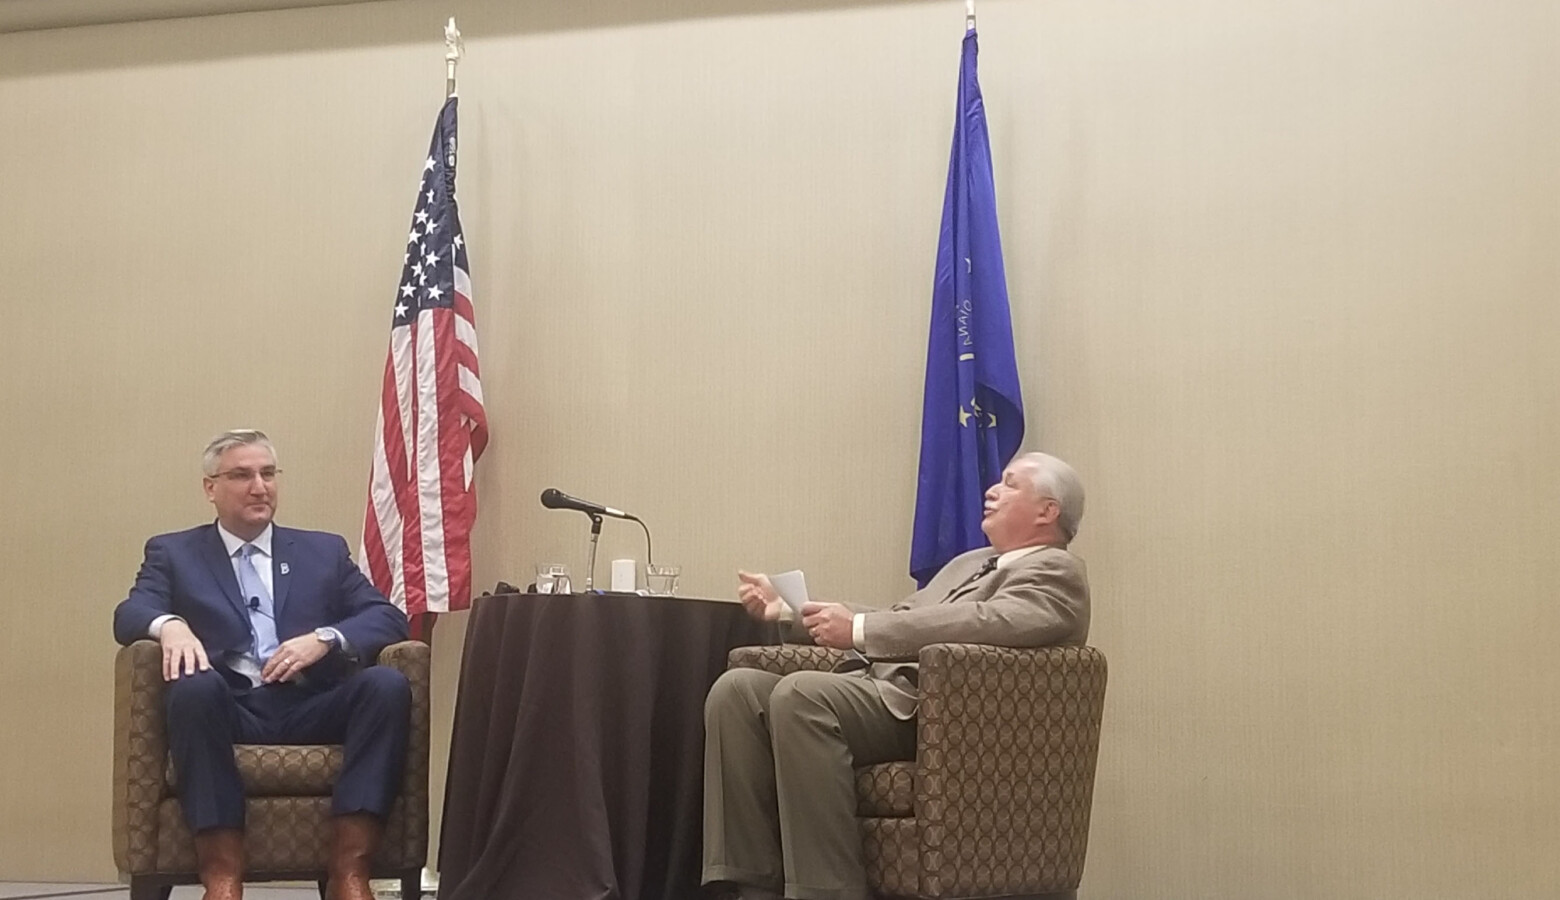 Indiana Farm Bureau President Randy Kron talks with Gov. Eric Holcomb about issues impacting the Hoosier agriculture industry. (Samantha Horton/IPB News)